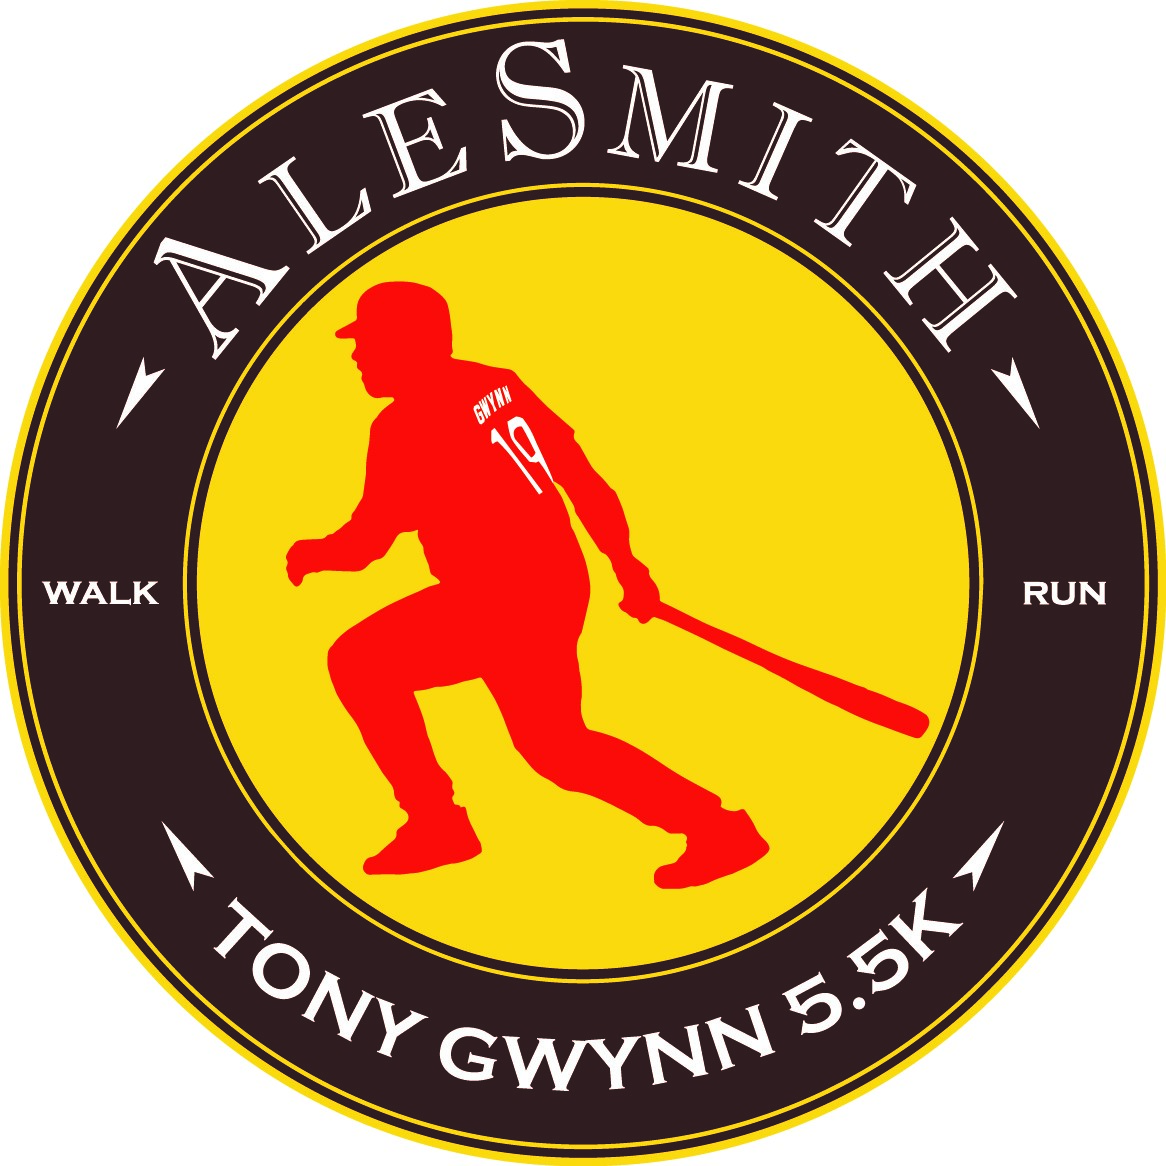 Image result for Tony Gwynn 5.5K Run & Walk